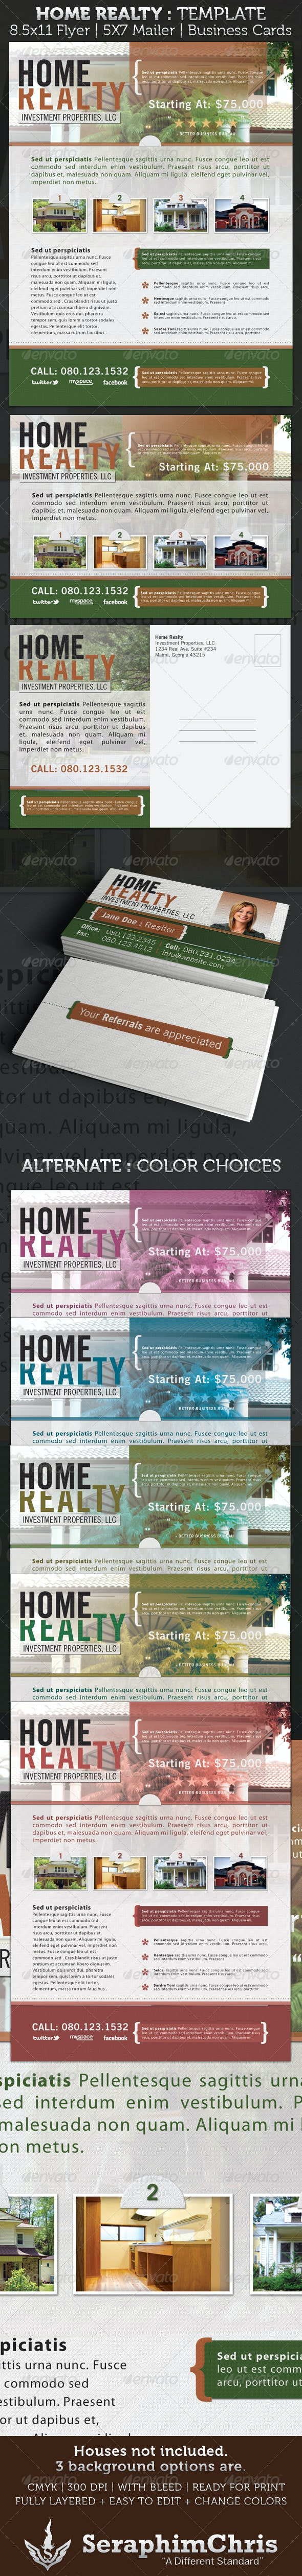 Real Estate Advertisement Package Template - Corporate Flyers